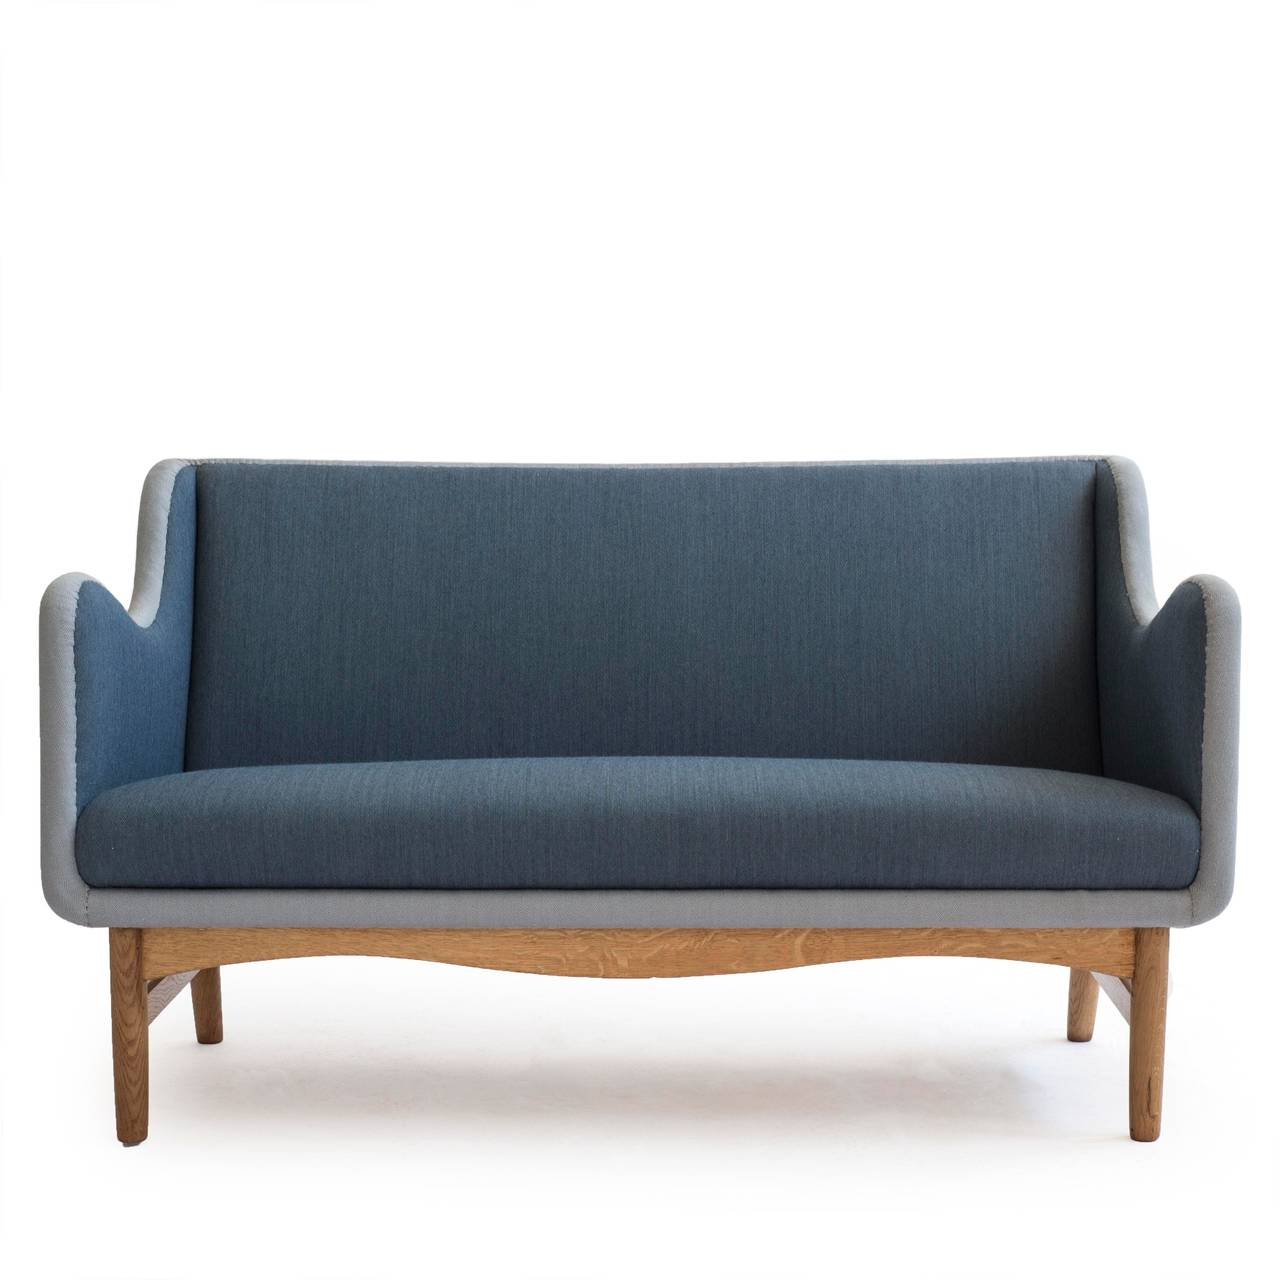 A little and beautiful Finn Juhl sofa with oak frame and two blue tone wool upholstery. 